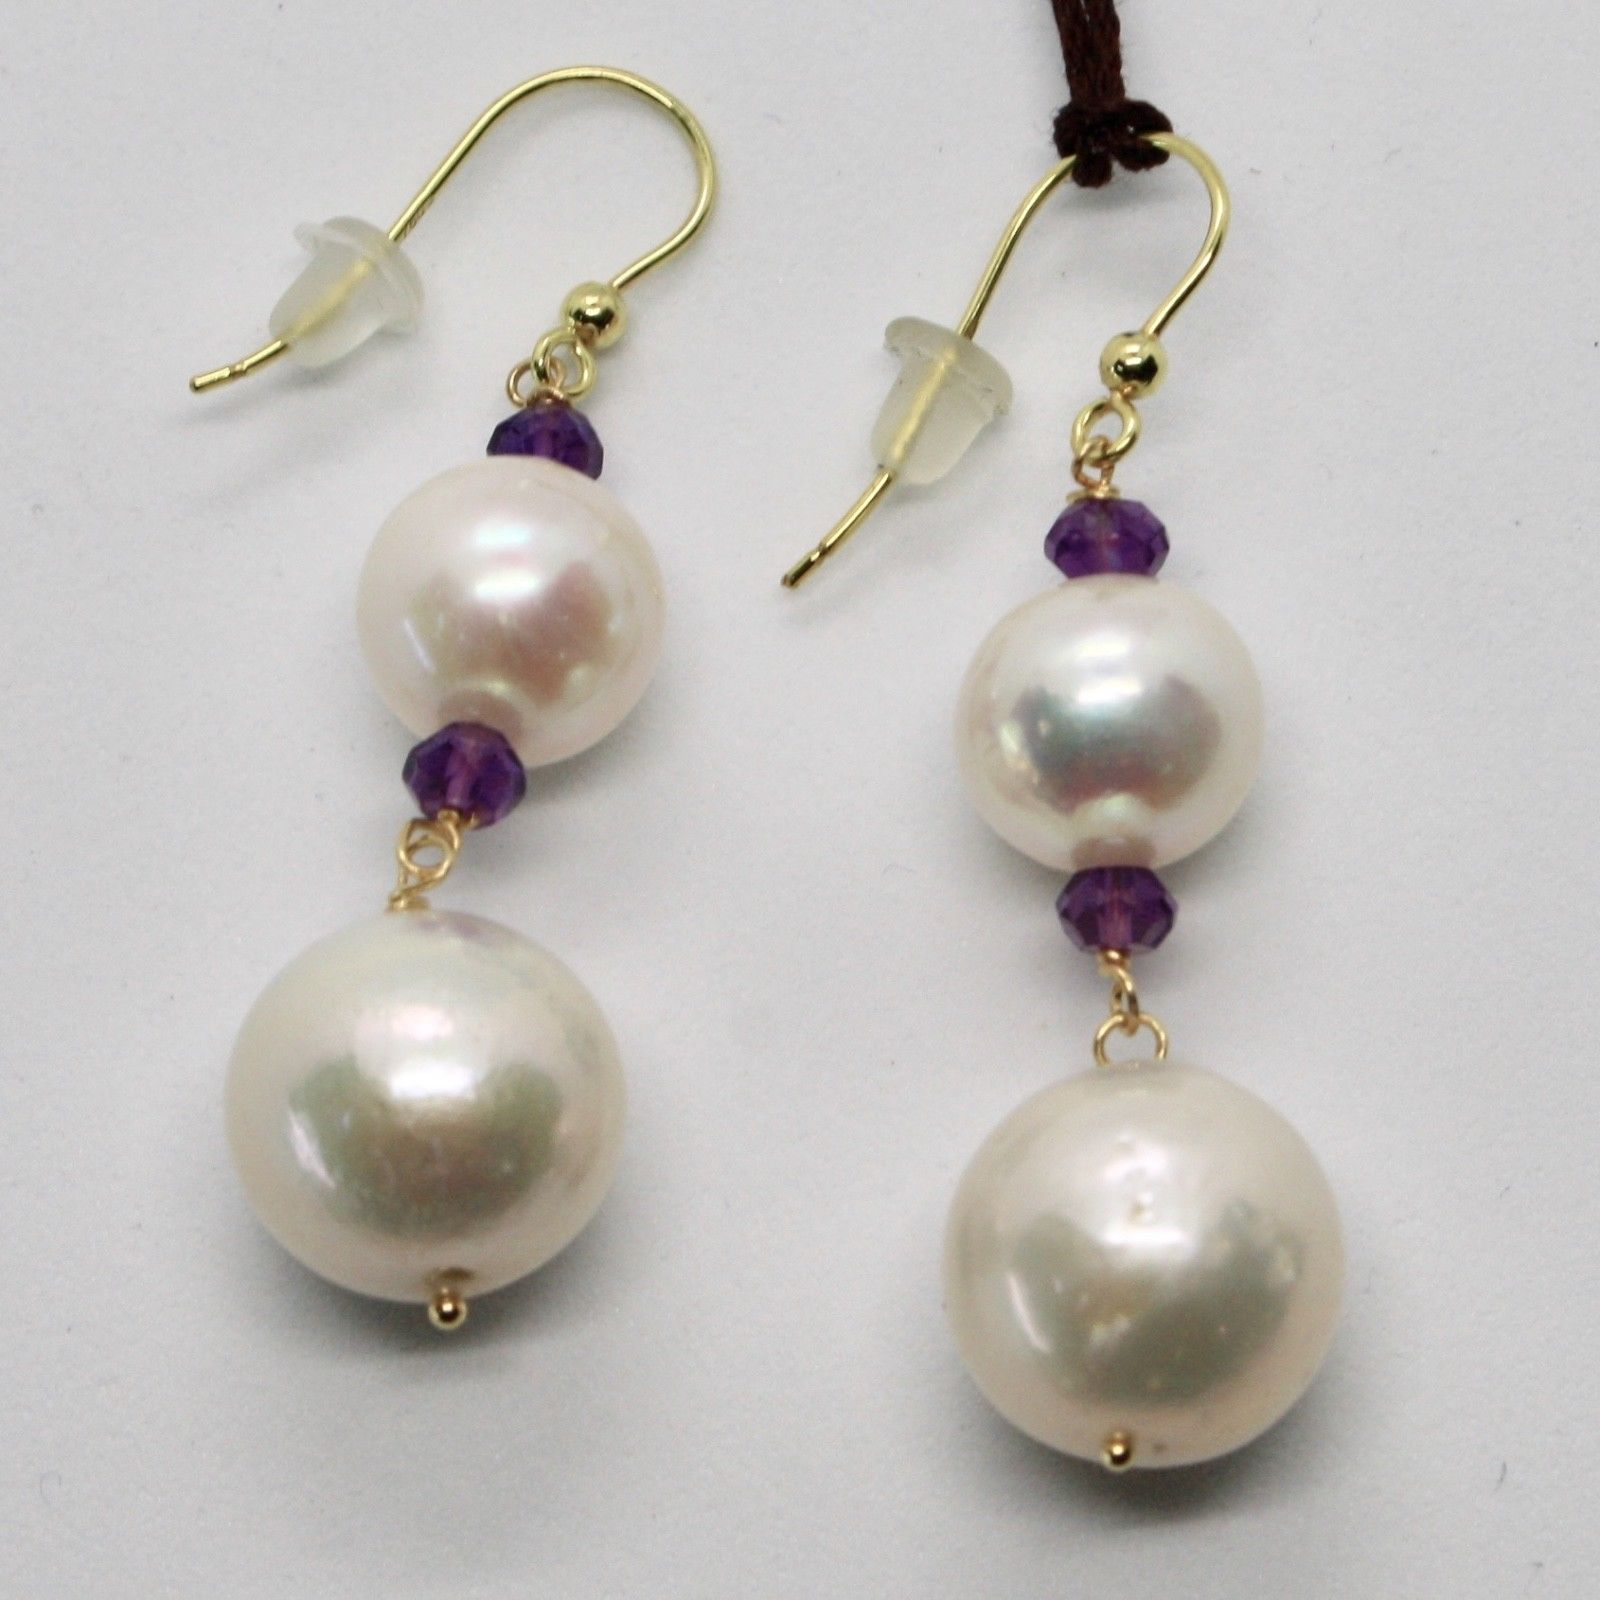 YELLOW GOLD EARRINGS 18KT 750 PEARLS OF WATER DOLCE AND AMETHYST MADE IN ITALY